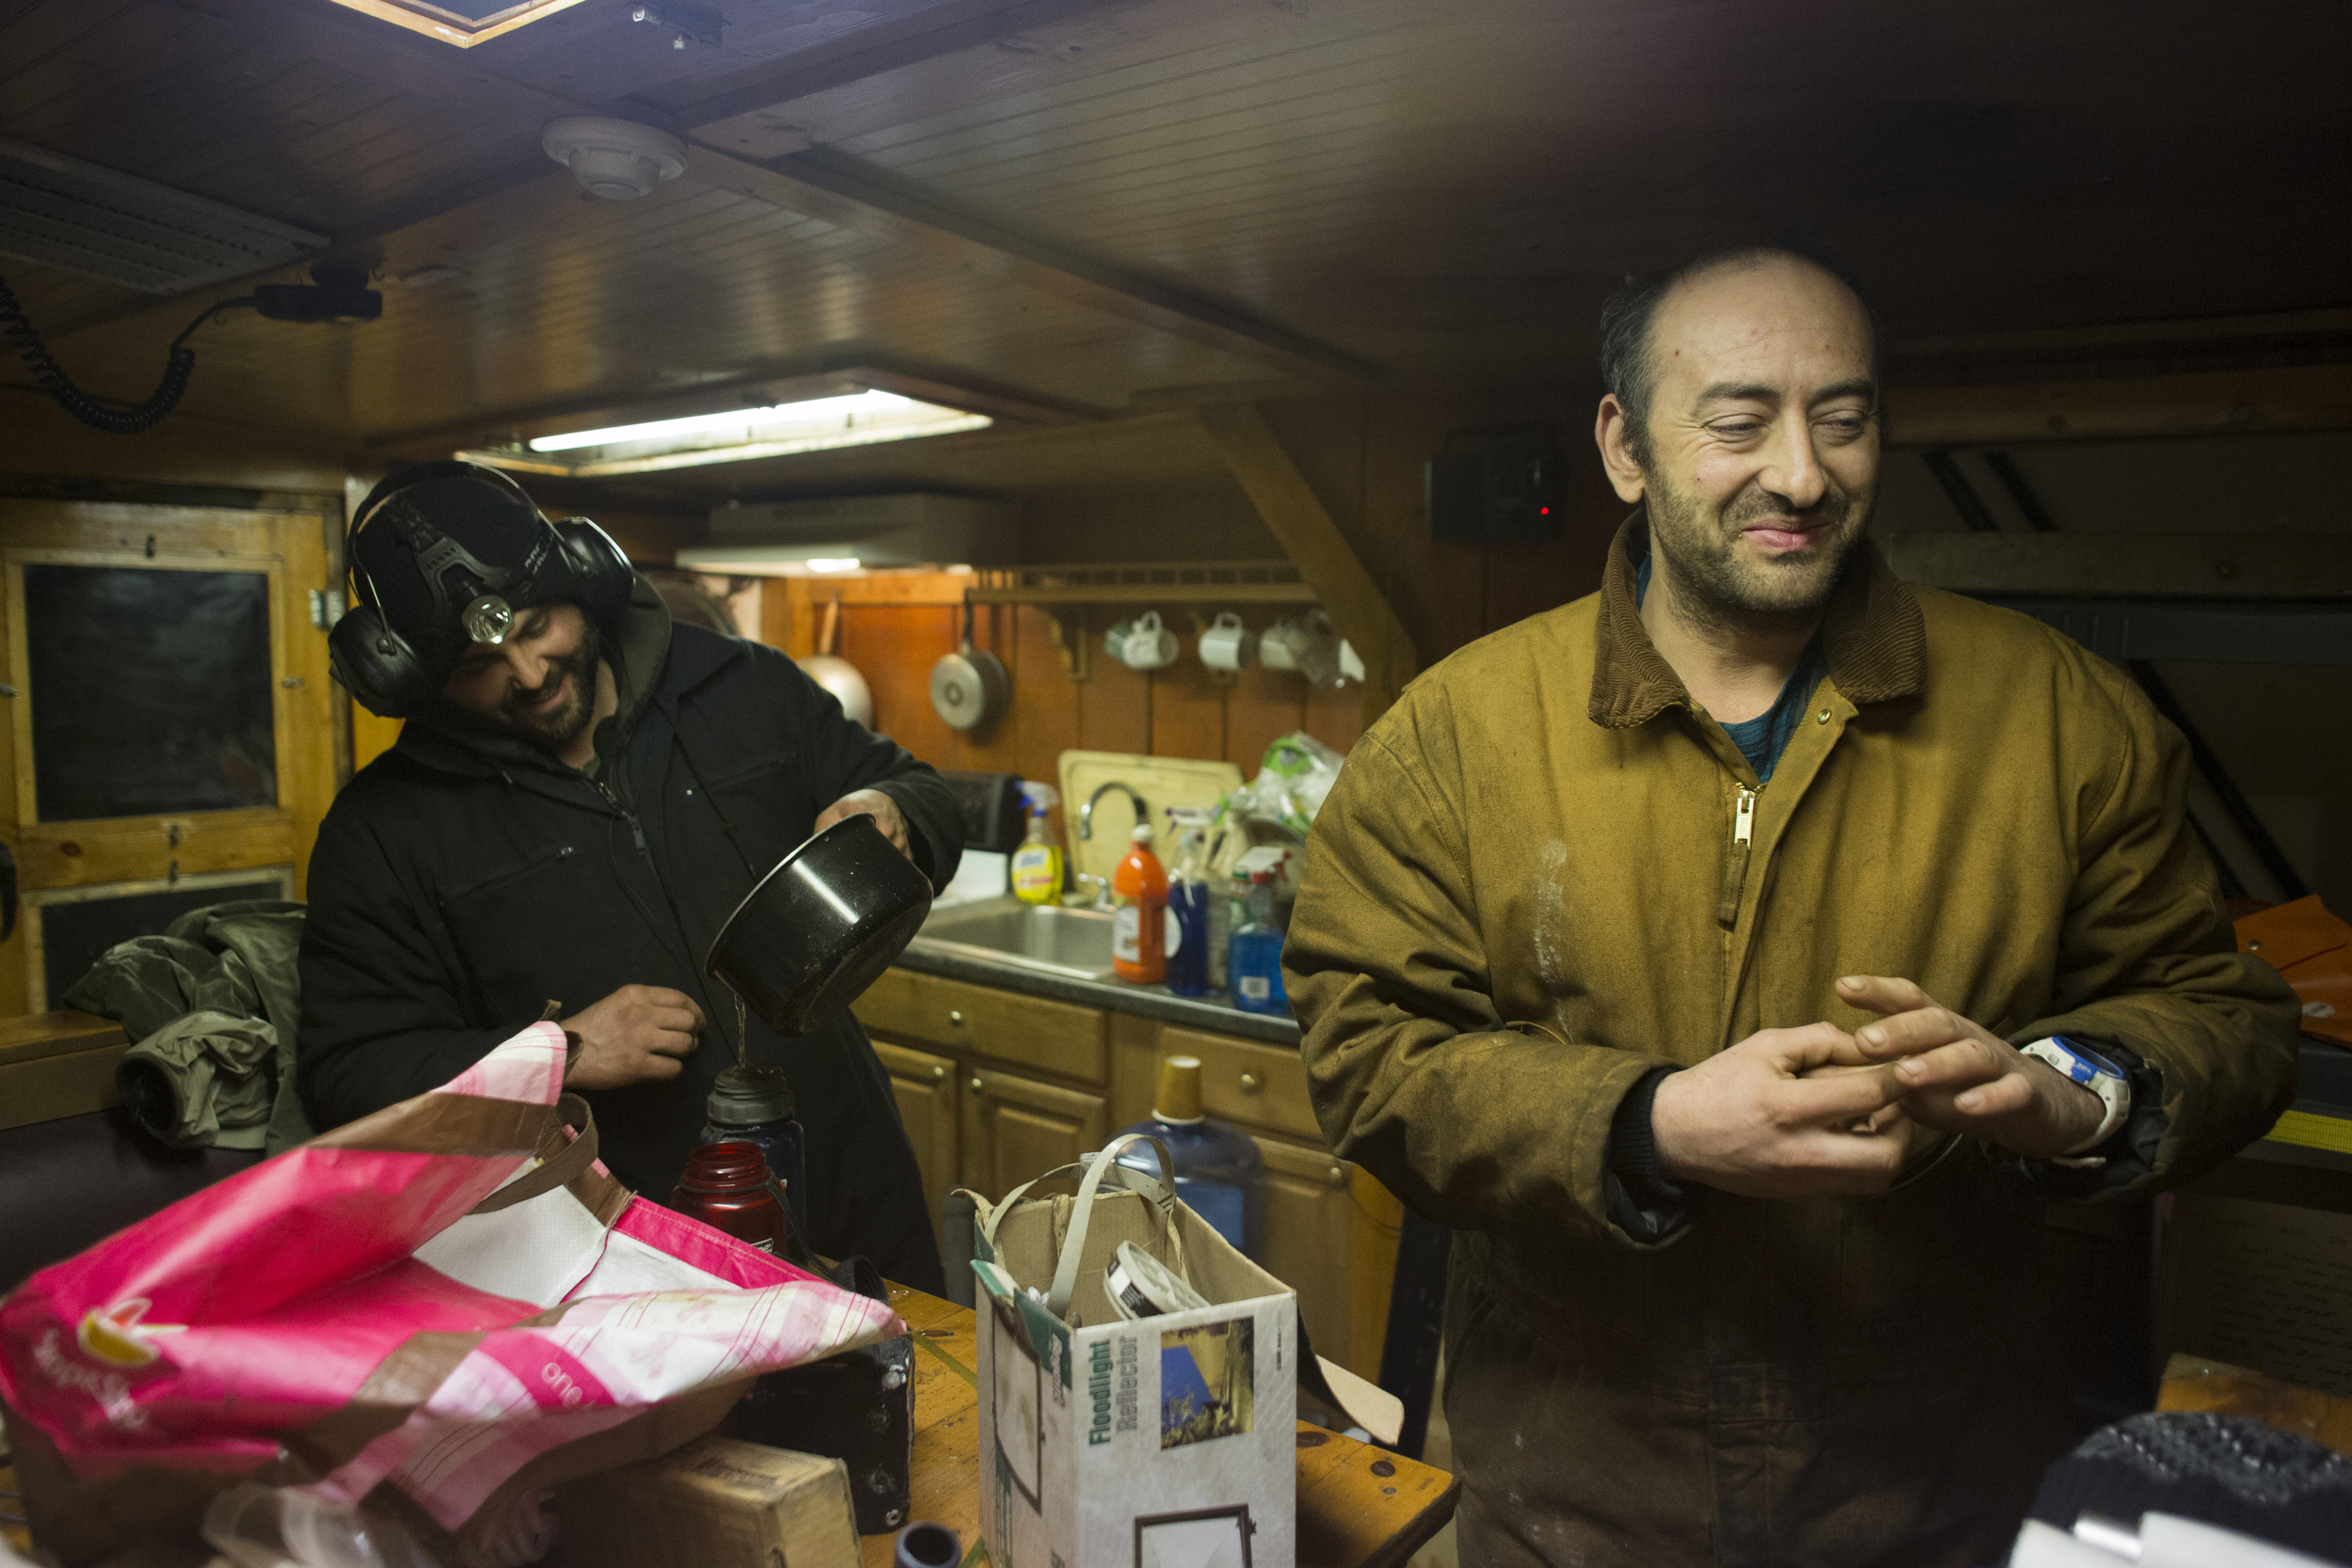 Chris and Mike laugh while making peanut butter and jelly sandwiches, fast calories to keep themselves awake, in the  Oxman 's galley.